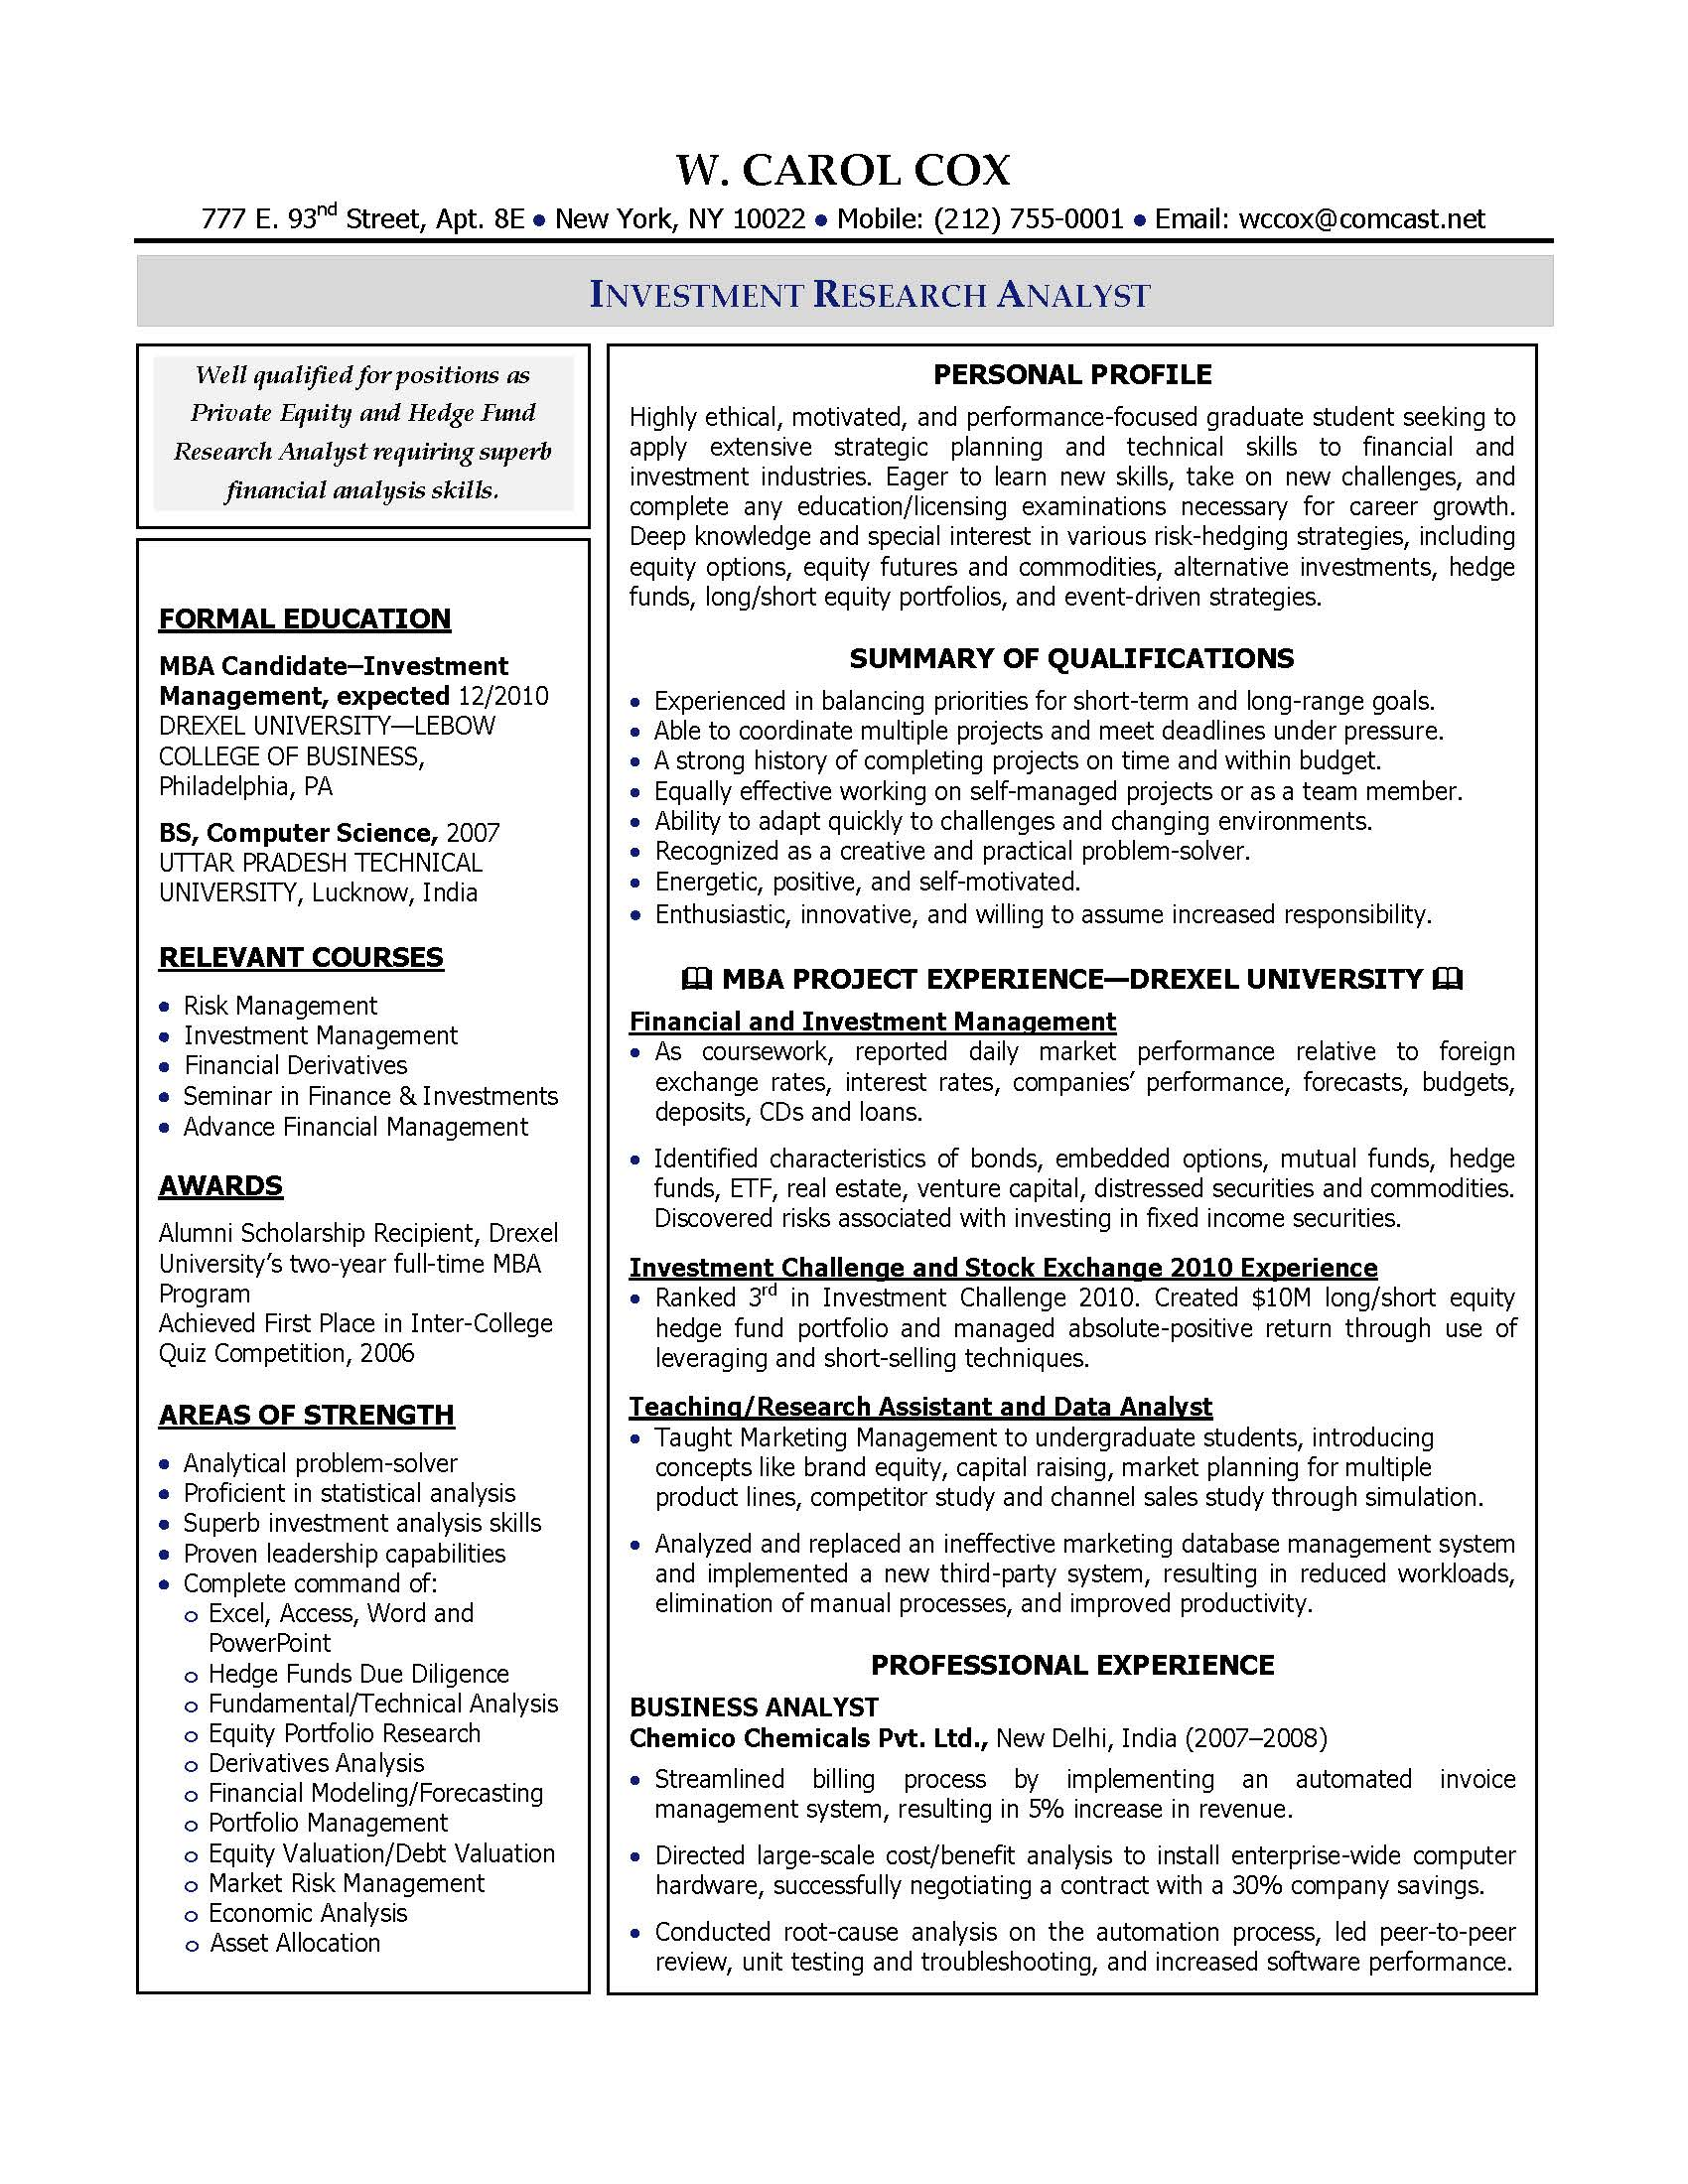 Investment Research Analyst Resume Sample, Provided By Elite Resume Writing  Services